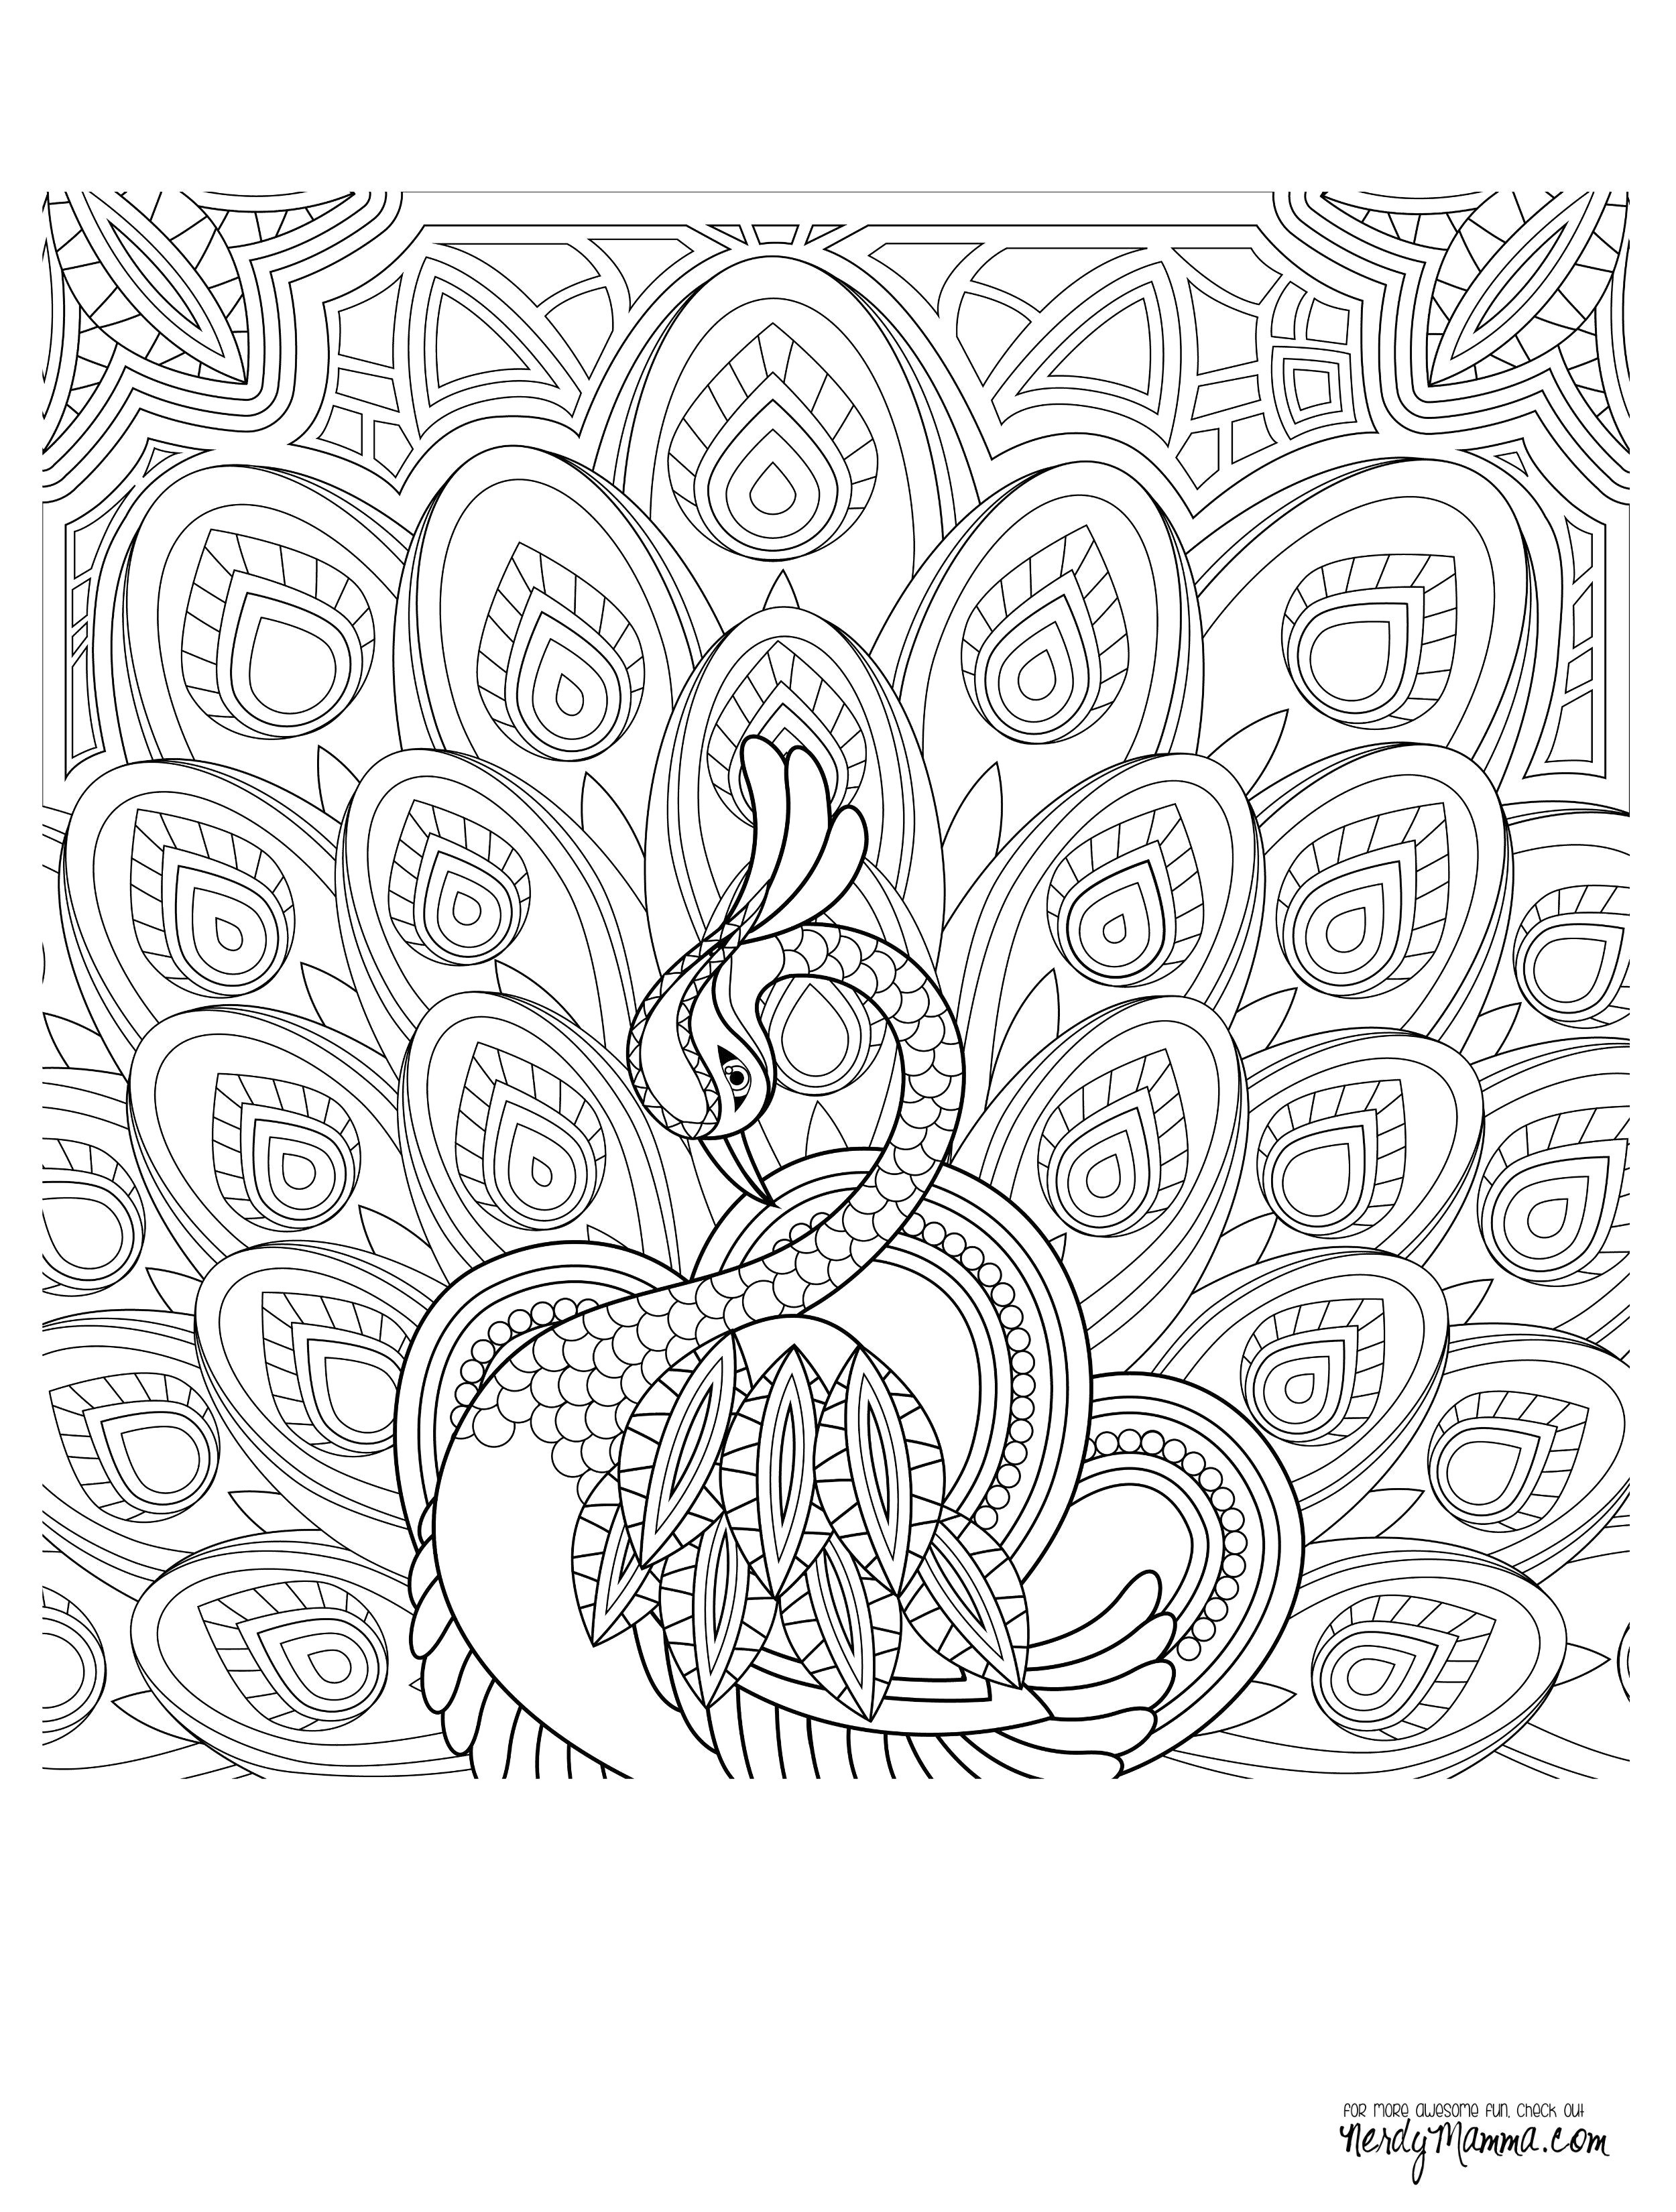 Jack and the Beanstalk Coloring Pages Free  Gallery 18f - Free Download